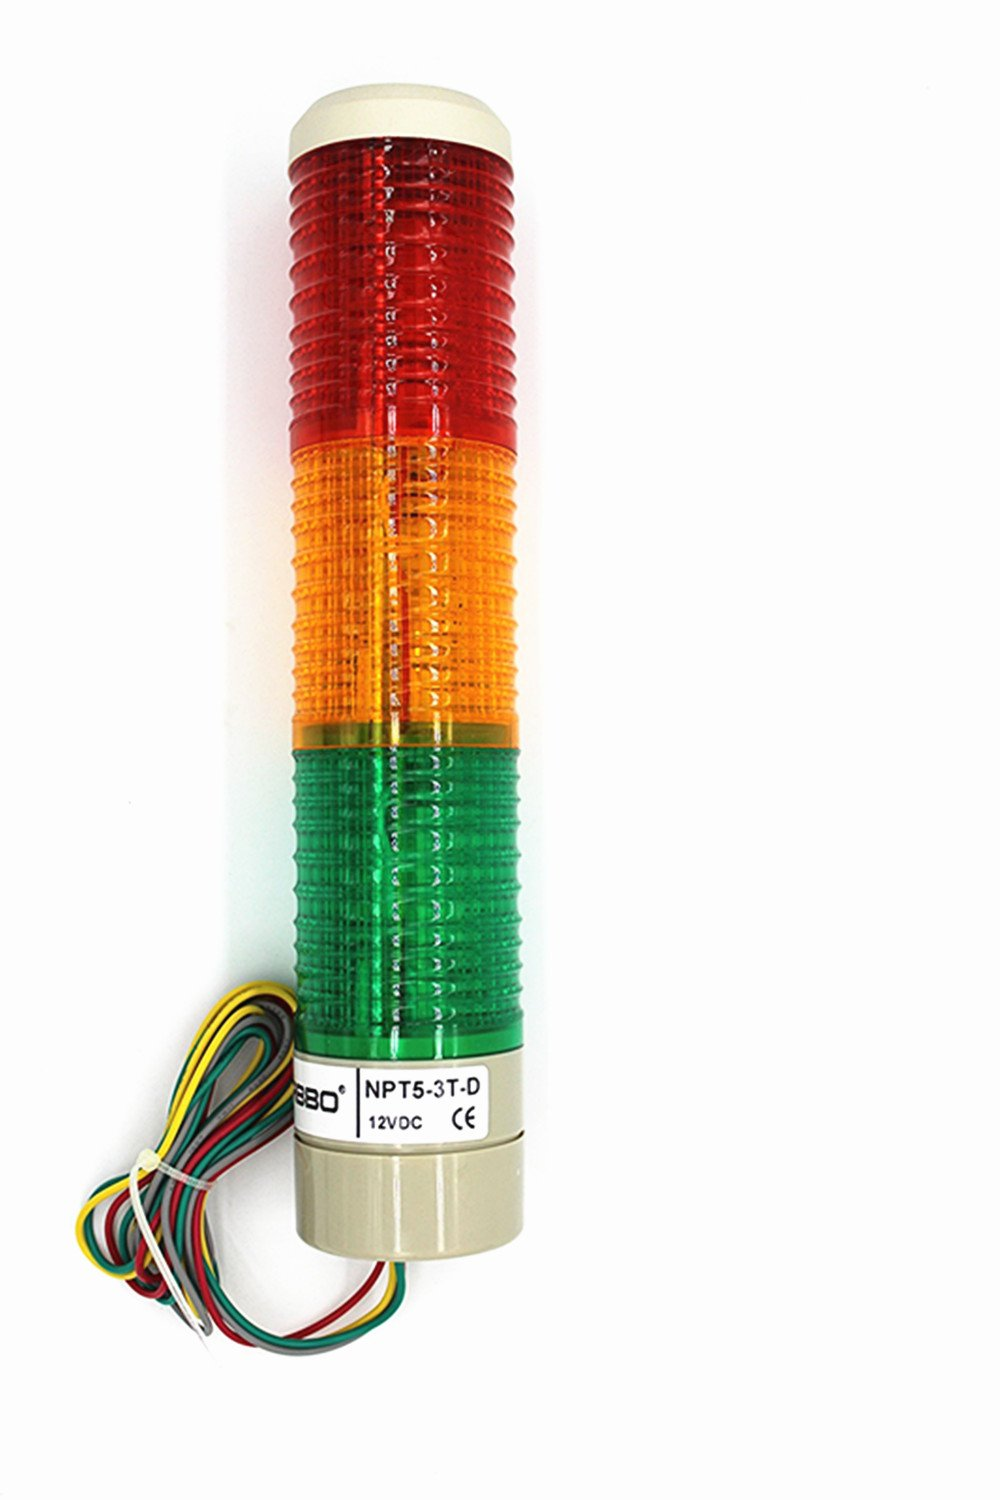 Nxtop Industrial Signal Light Column LED Alarm Round Tower Light Indicator Warning Light r Red Green Yellow DC 12V Steady On by Nxtop